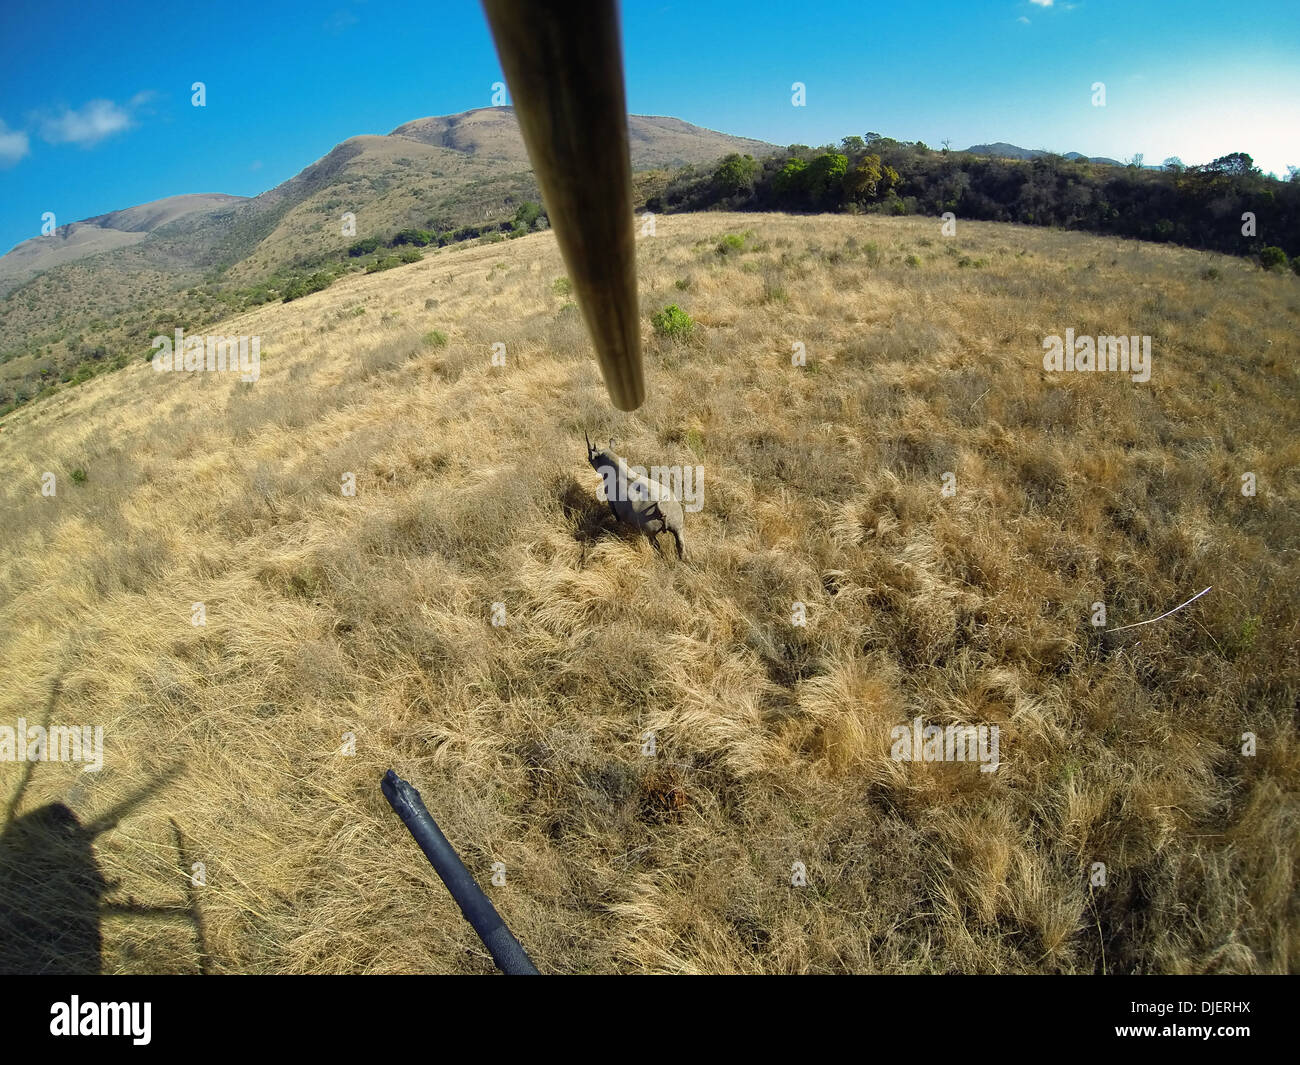 Black Rhinoceros (Diceros bicornis) being darted from a helicopter for conservation.Ithala game reserve.South Africa - Stock Image